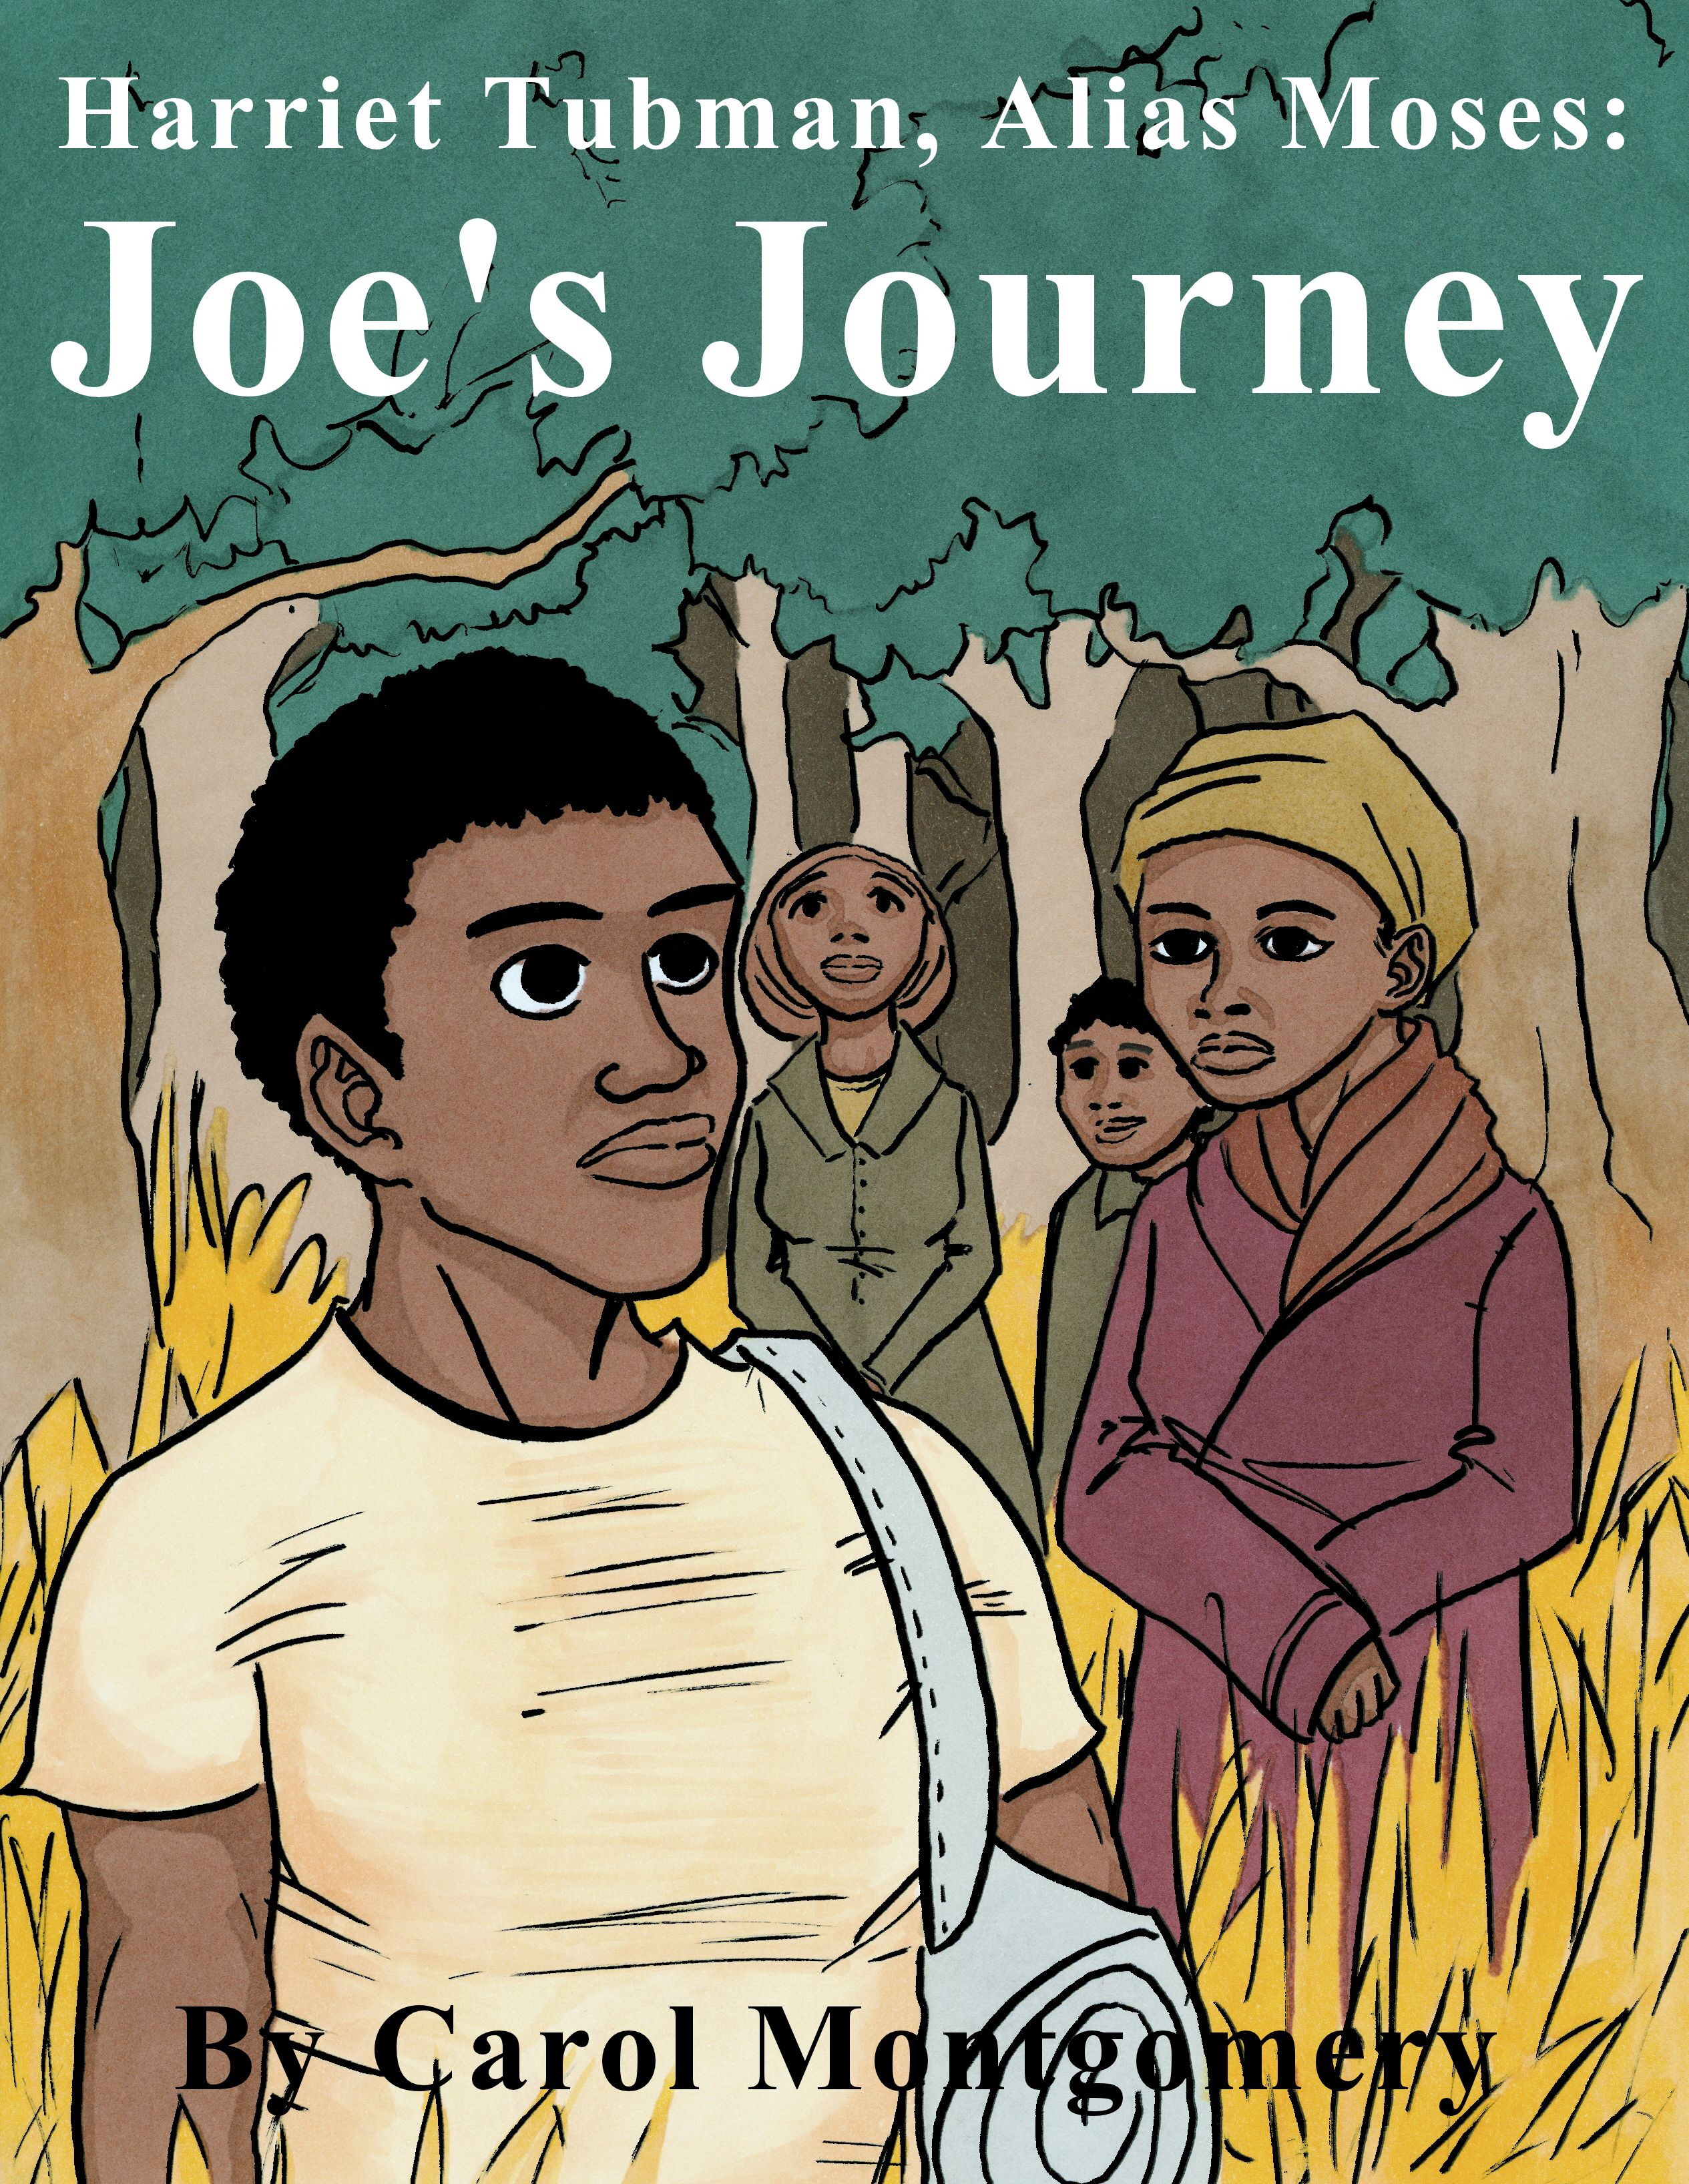 Free Readers Theater Based On Harriet Tubman S Own Words Harriet Tubman Alias Moses Joe S